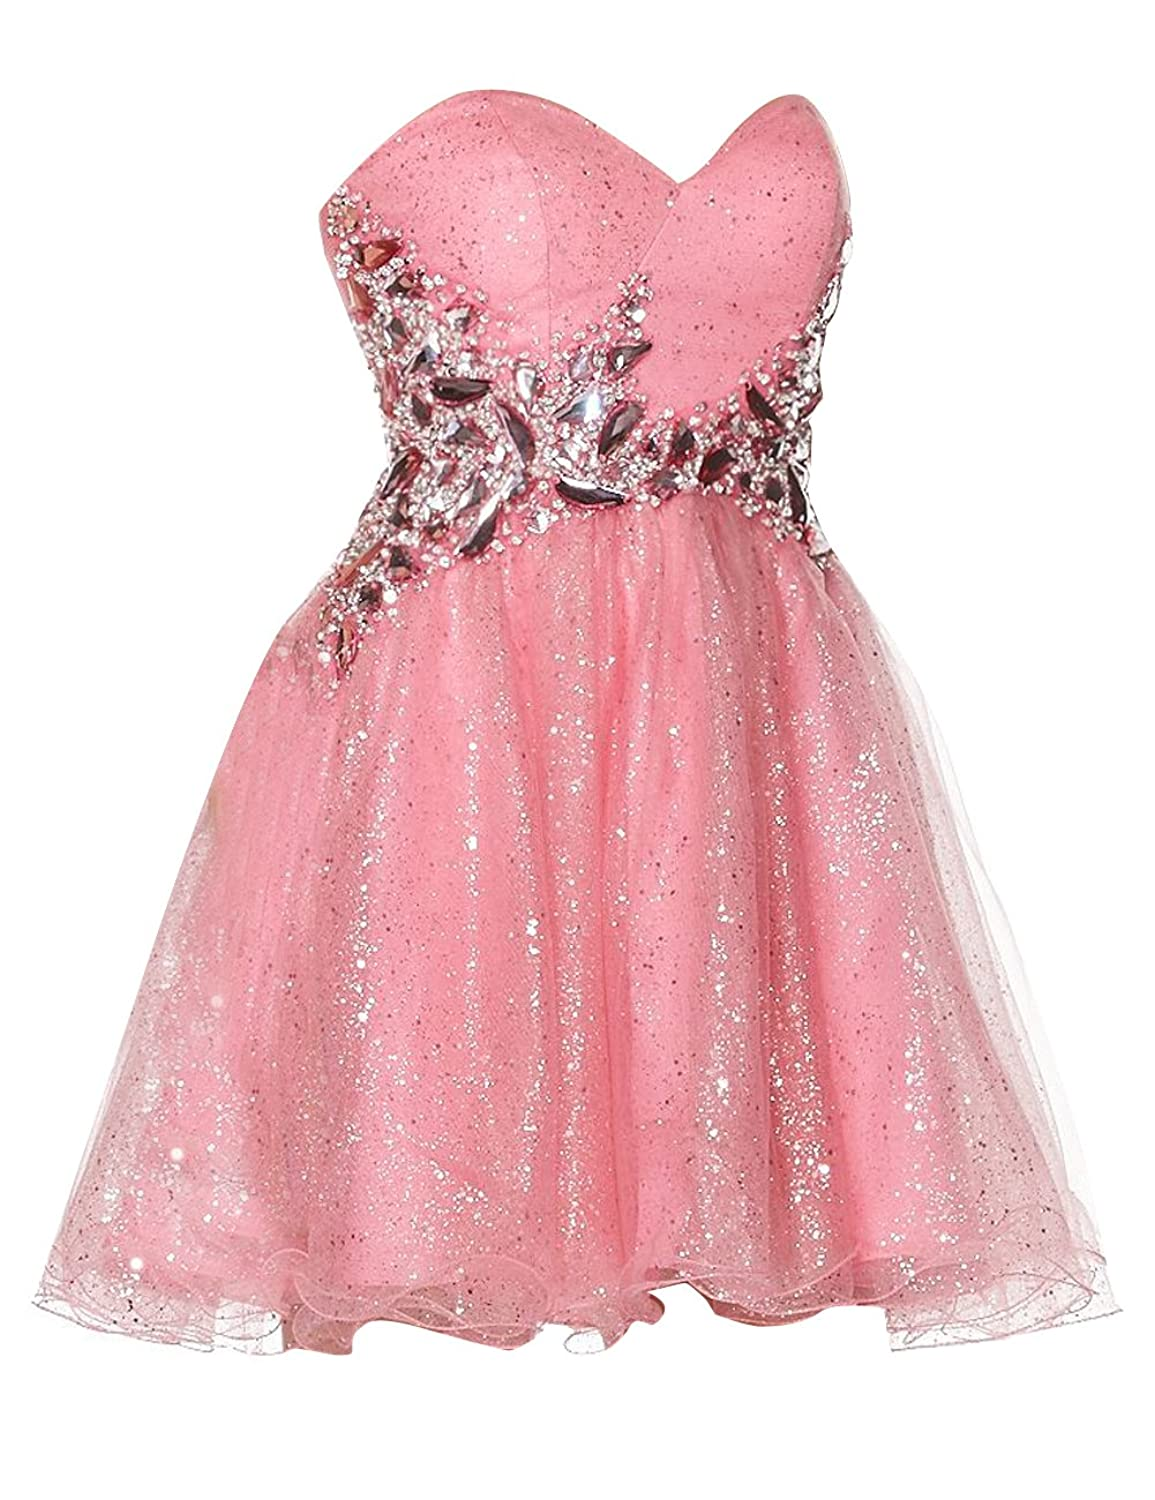 Dressystar A Line Short Prom Dresses Glittering Beaded Sweetheart Cocktail Gowns